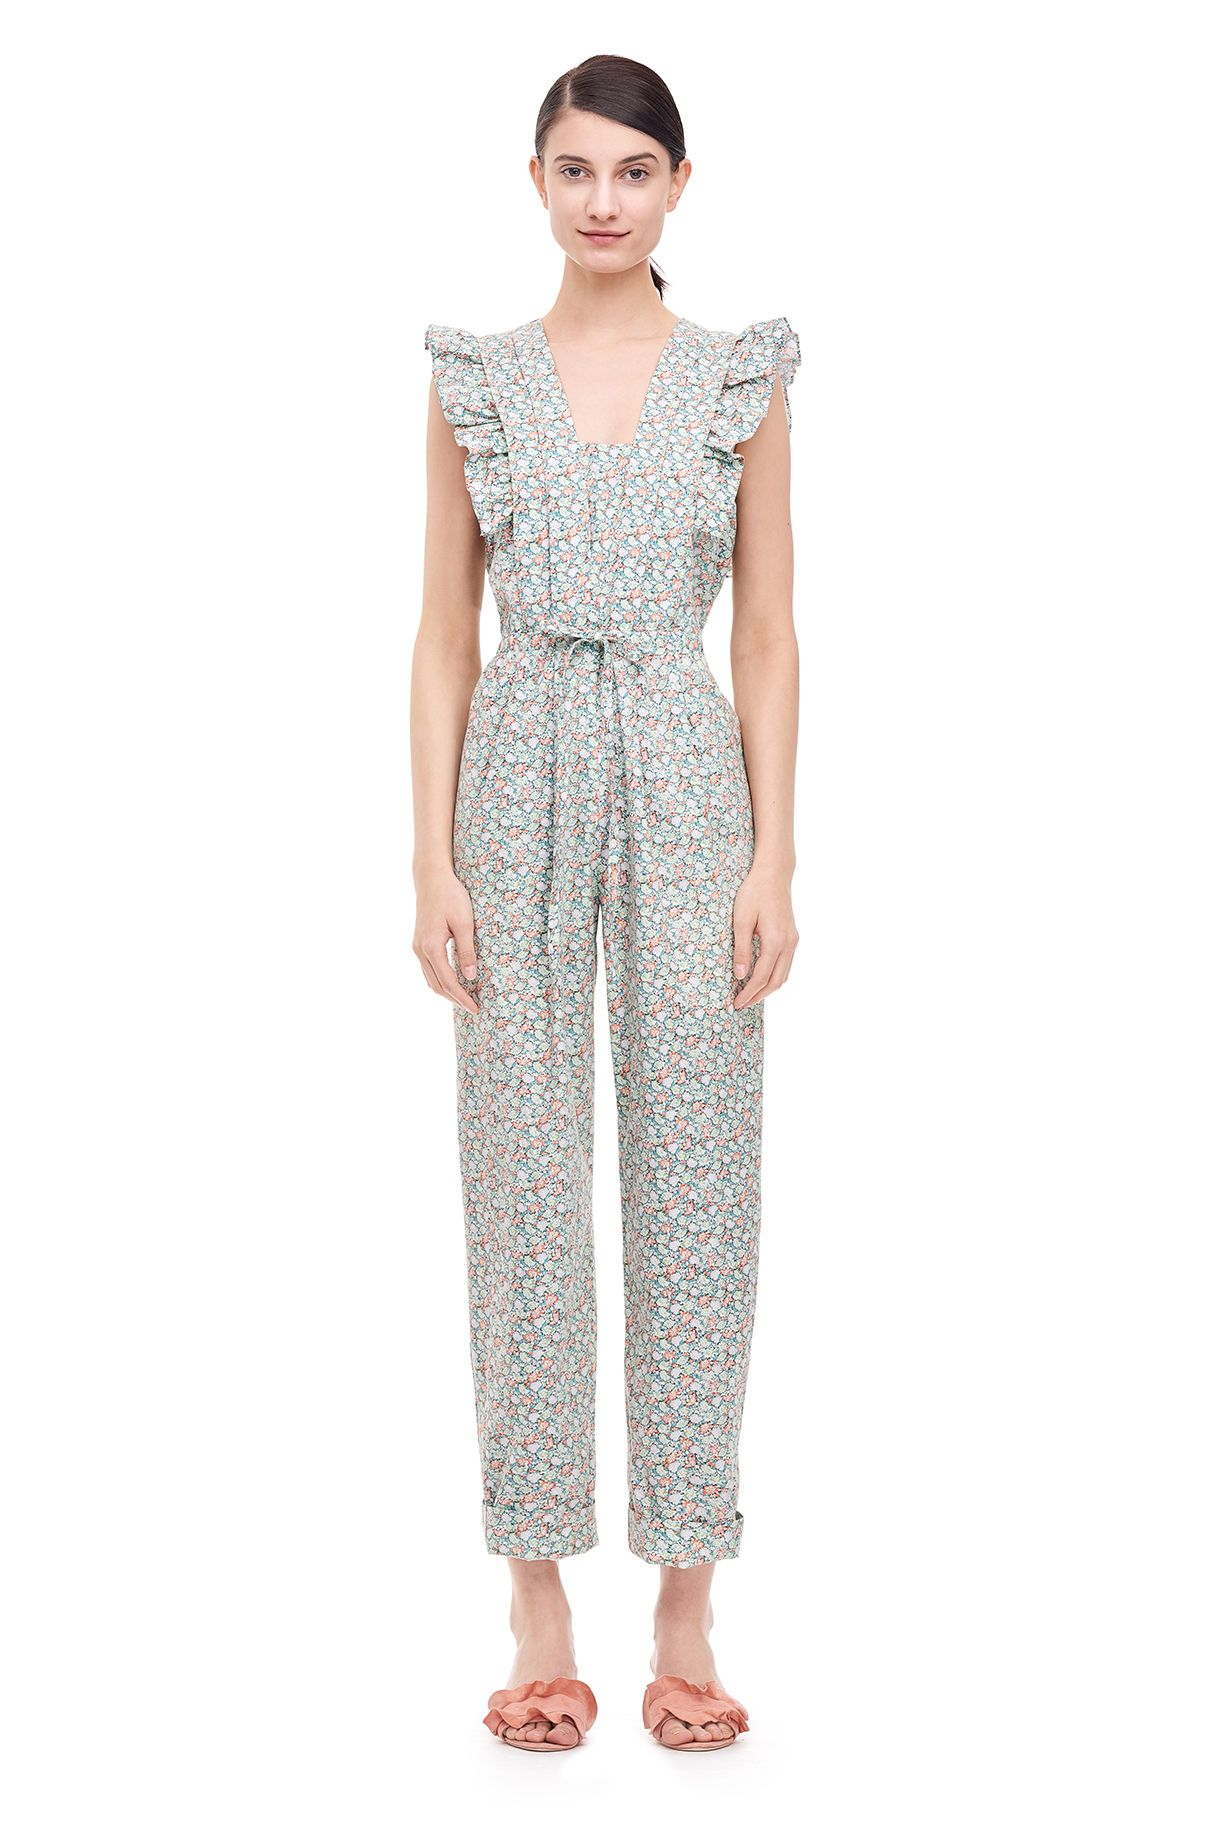 A floral-print jumpsuit with ruffles and pintucks.